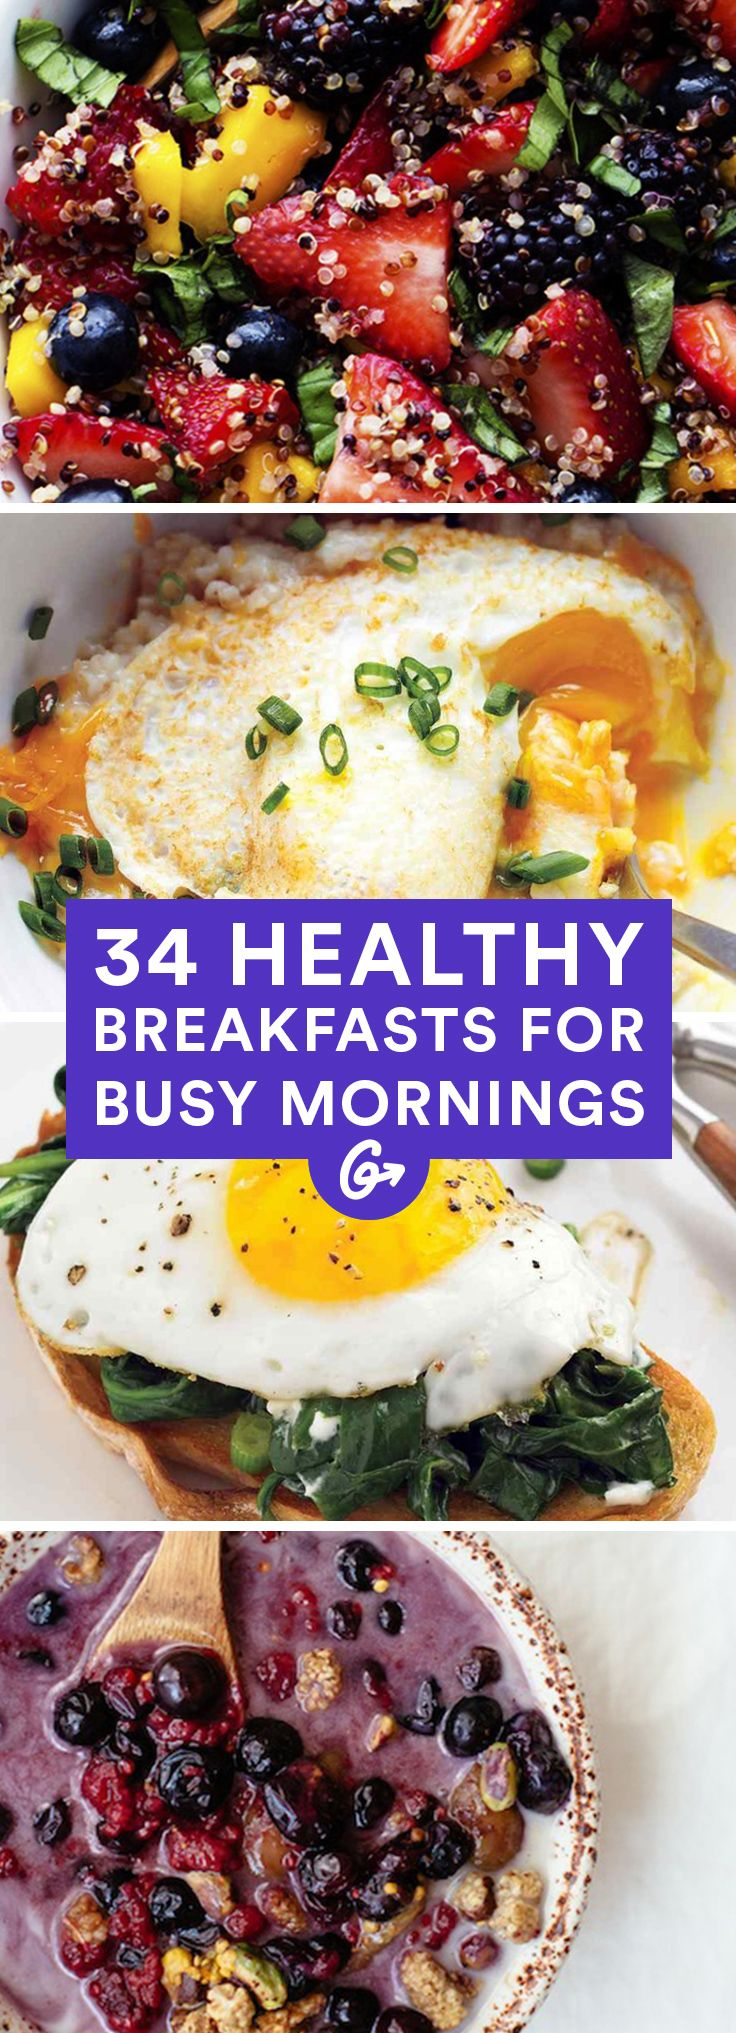 31 Fast and Healthy Breakfasts